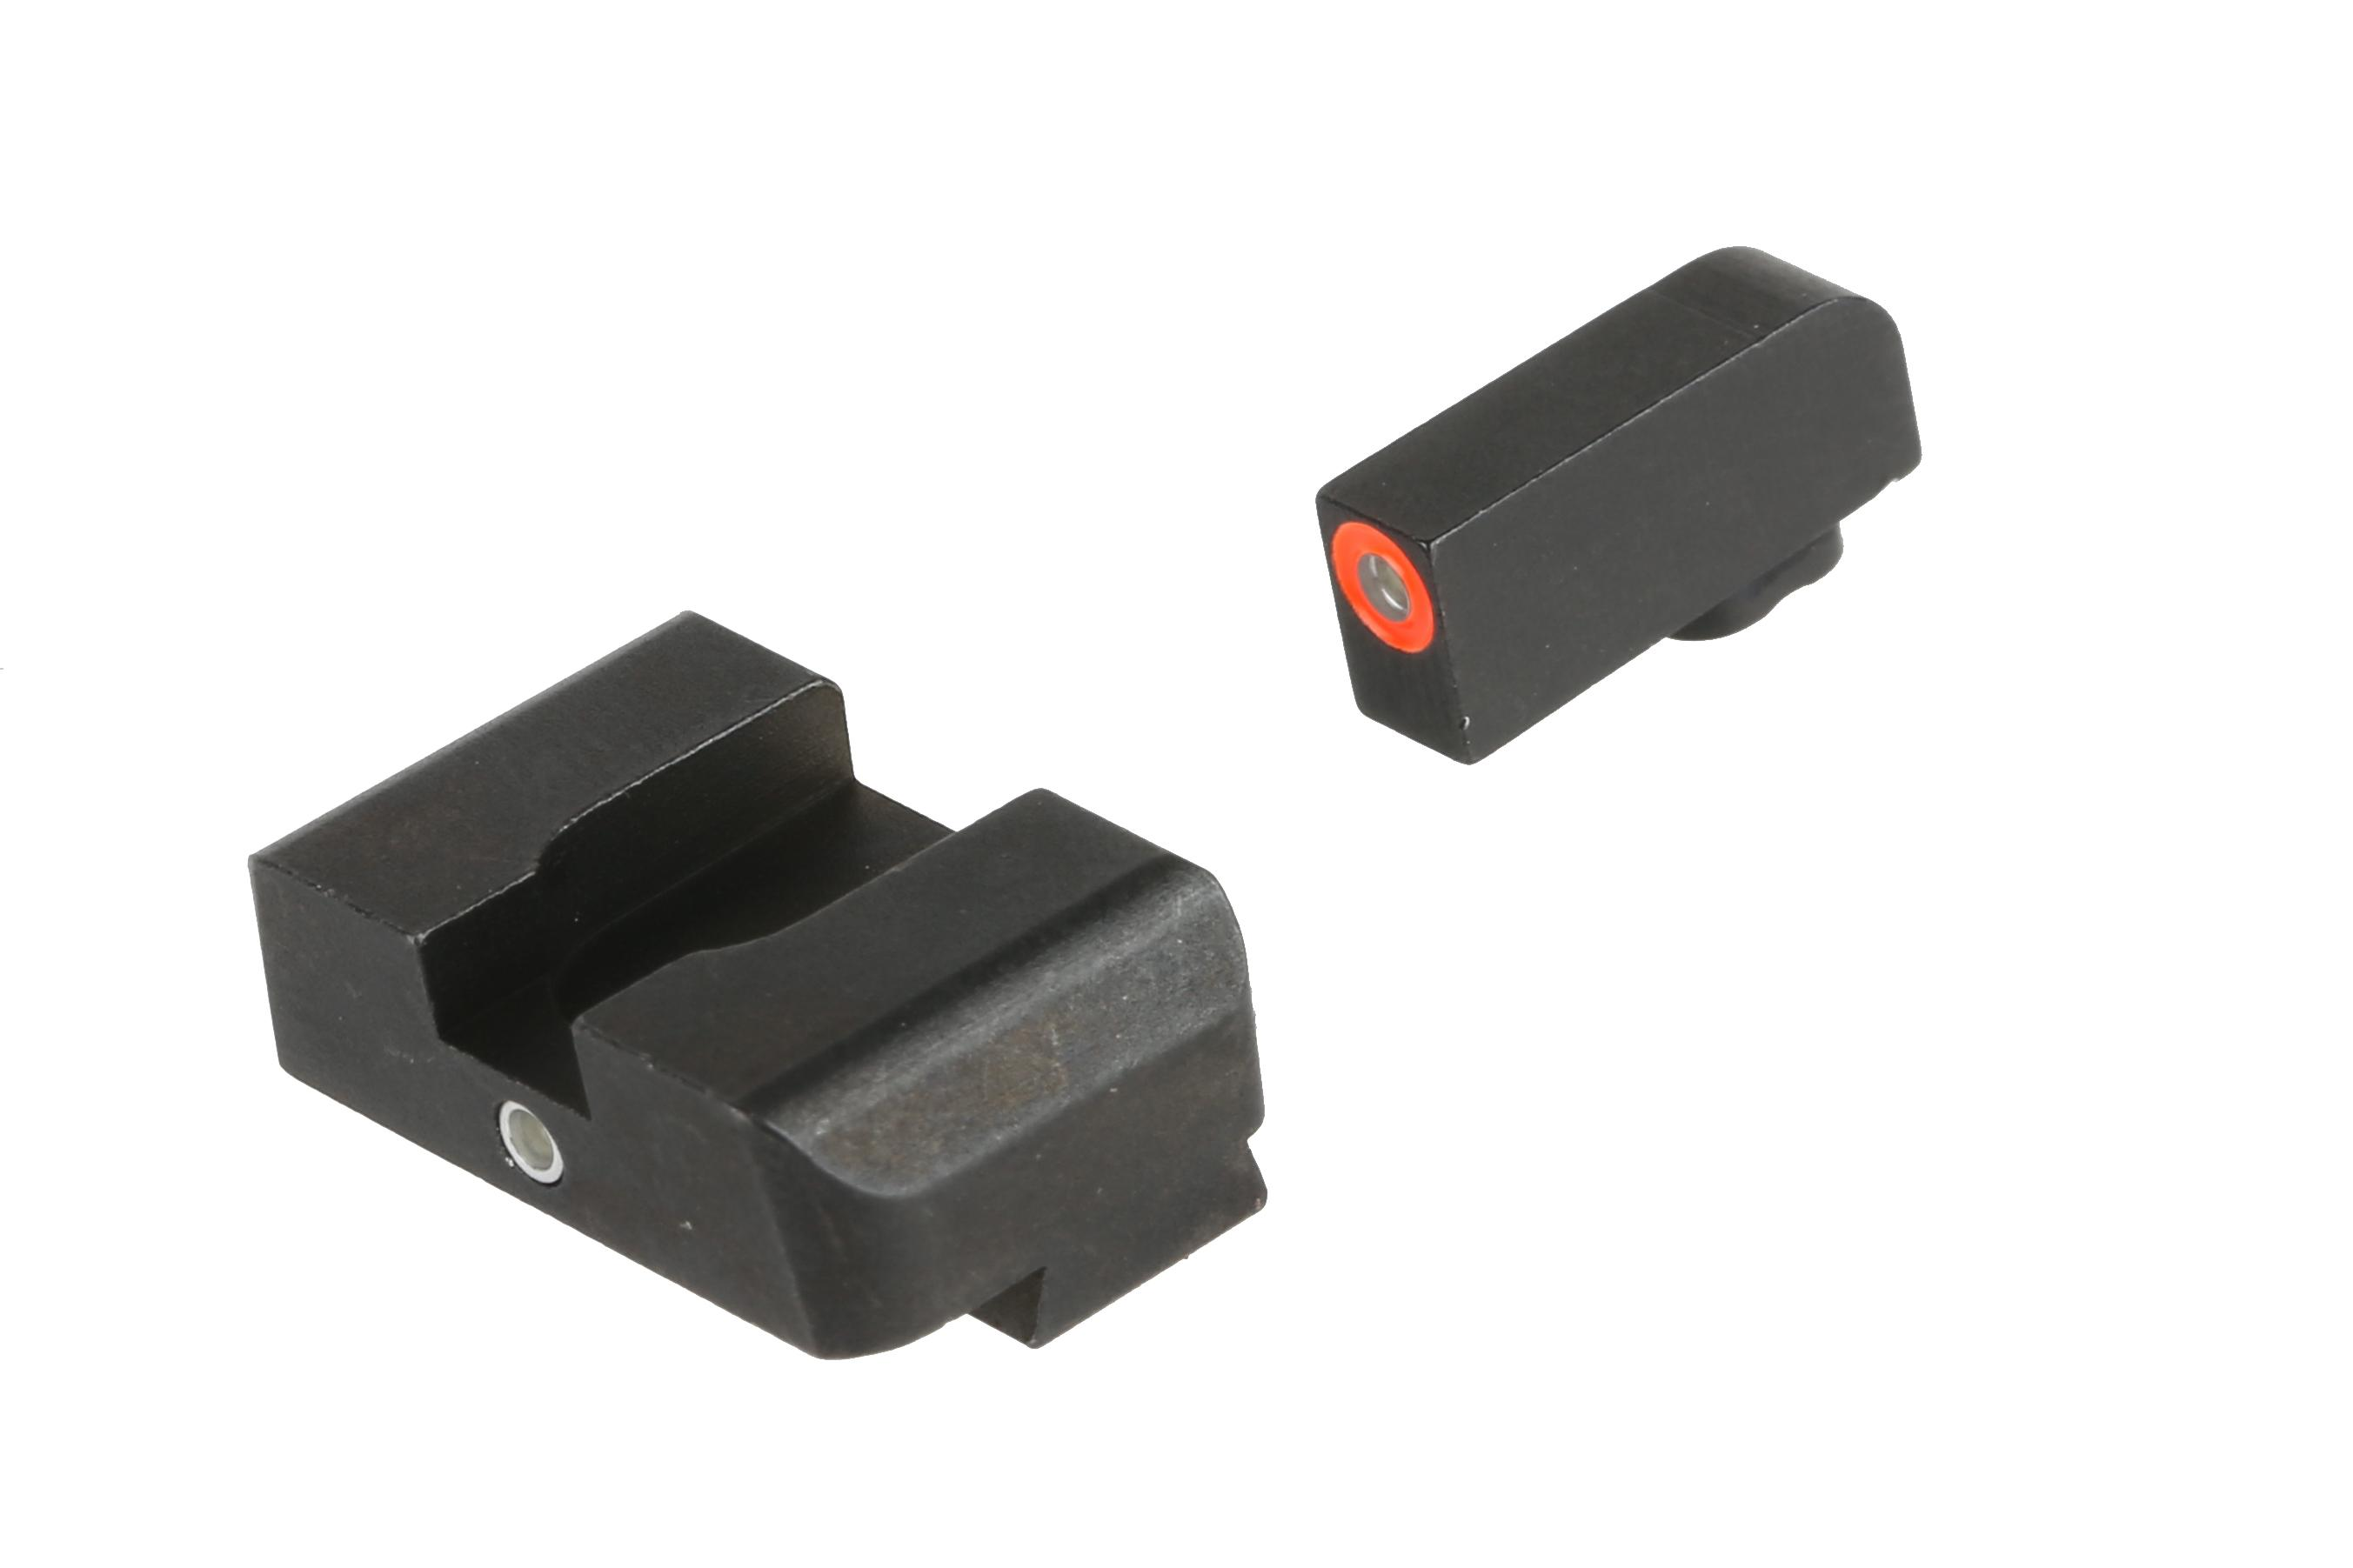 Ameriglo I-Dot Pro Night Sights for Glock Compatible